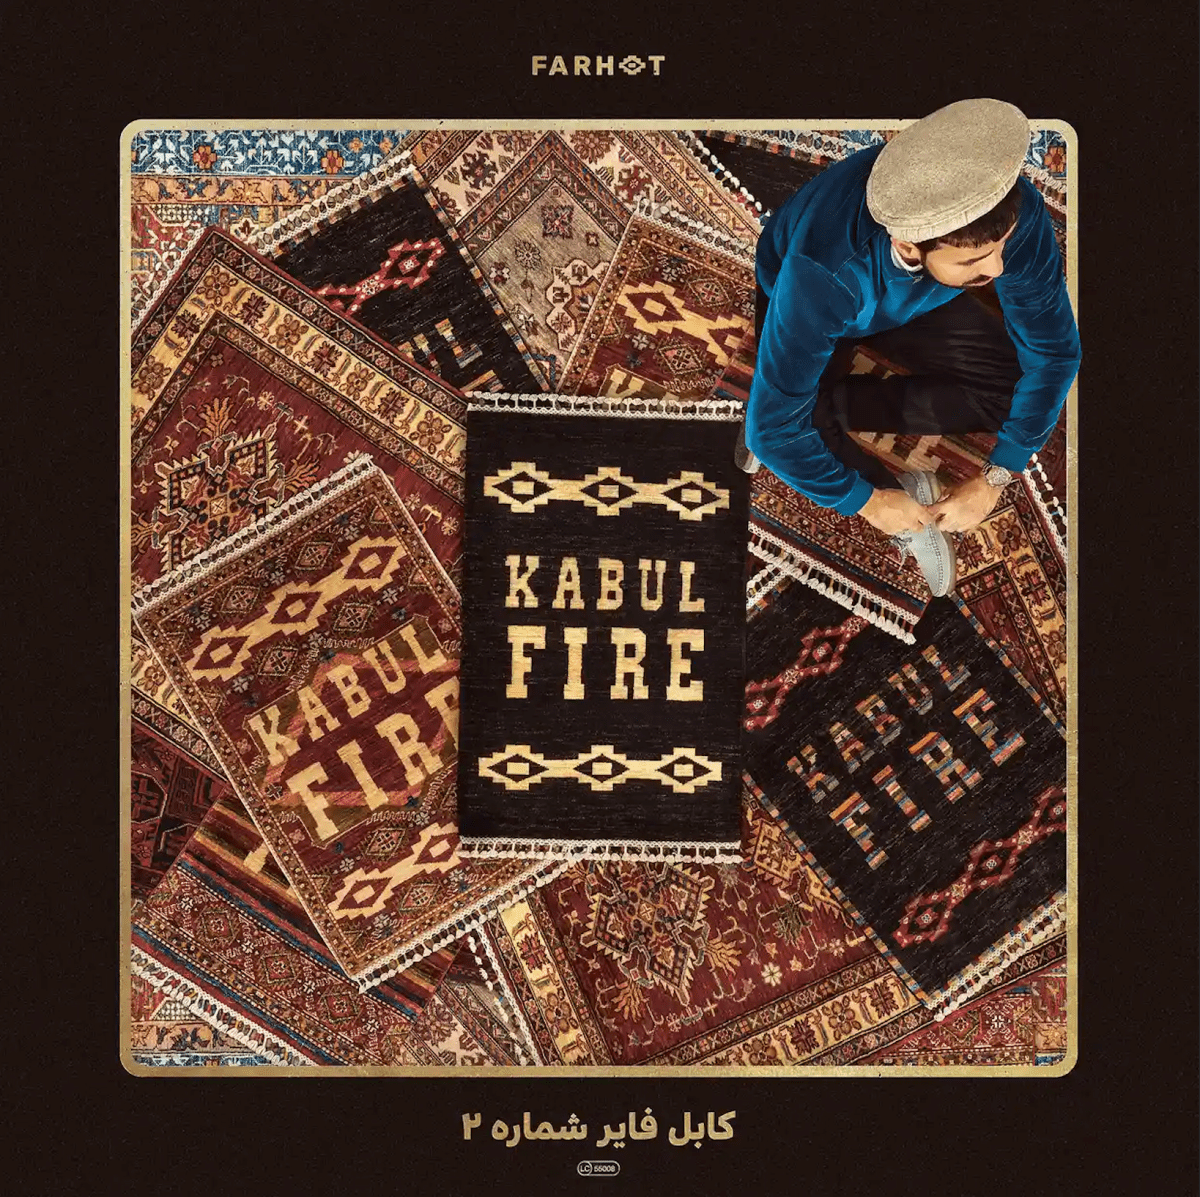 Album cover for Kabul Fire Vol 2 from Farhot.